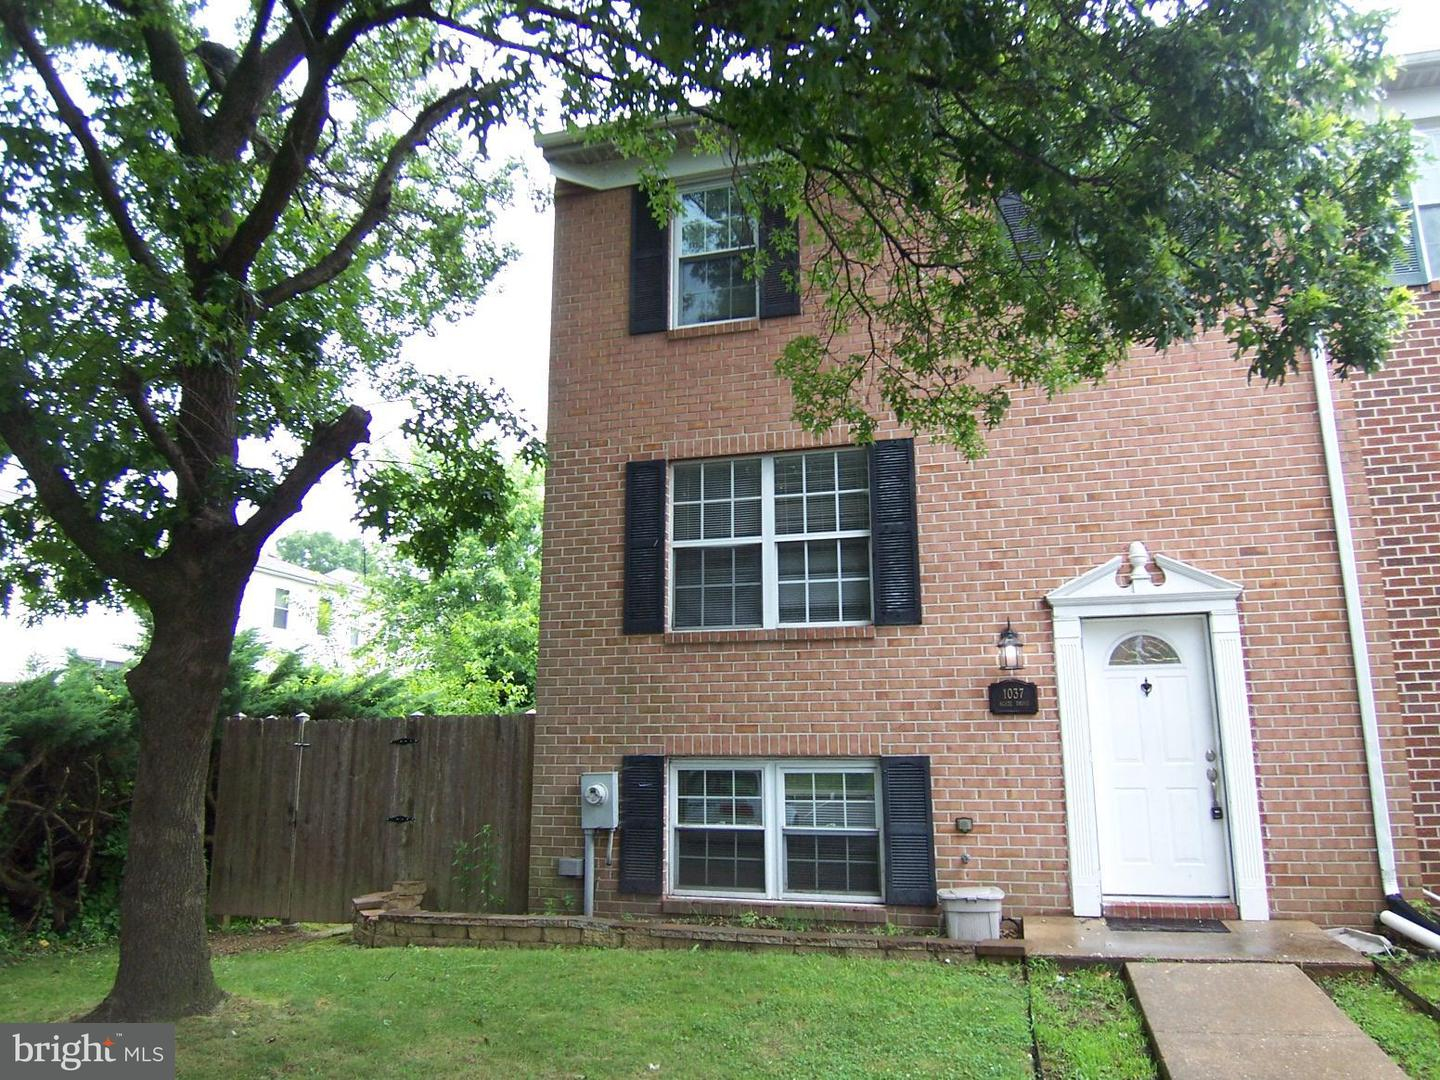 Other Residential for Rent at 1037 Agate Dr Edgewood, Maryland 21040 United States